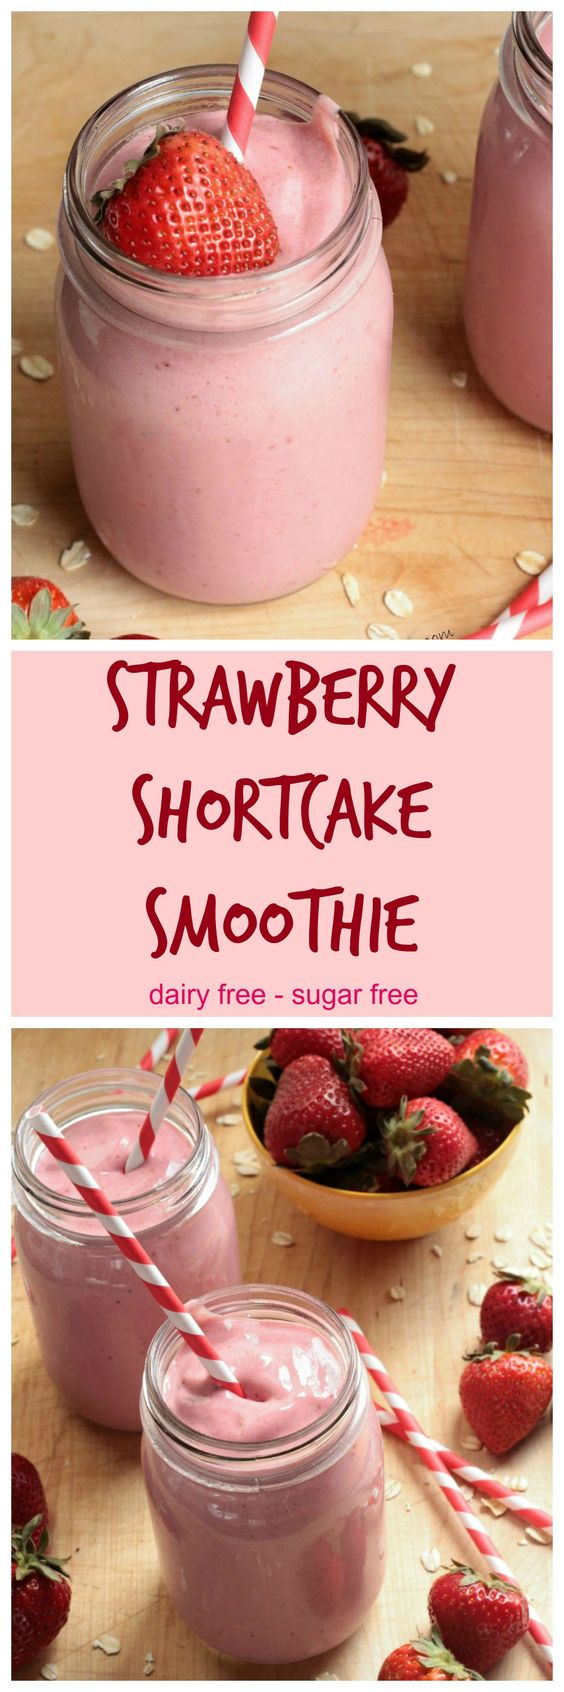 Strawberry Shortcake Smoothie | Recipe | Healthy Strawberry Shortcake ...